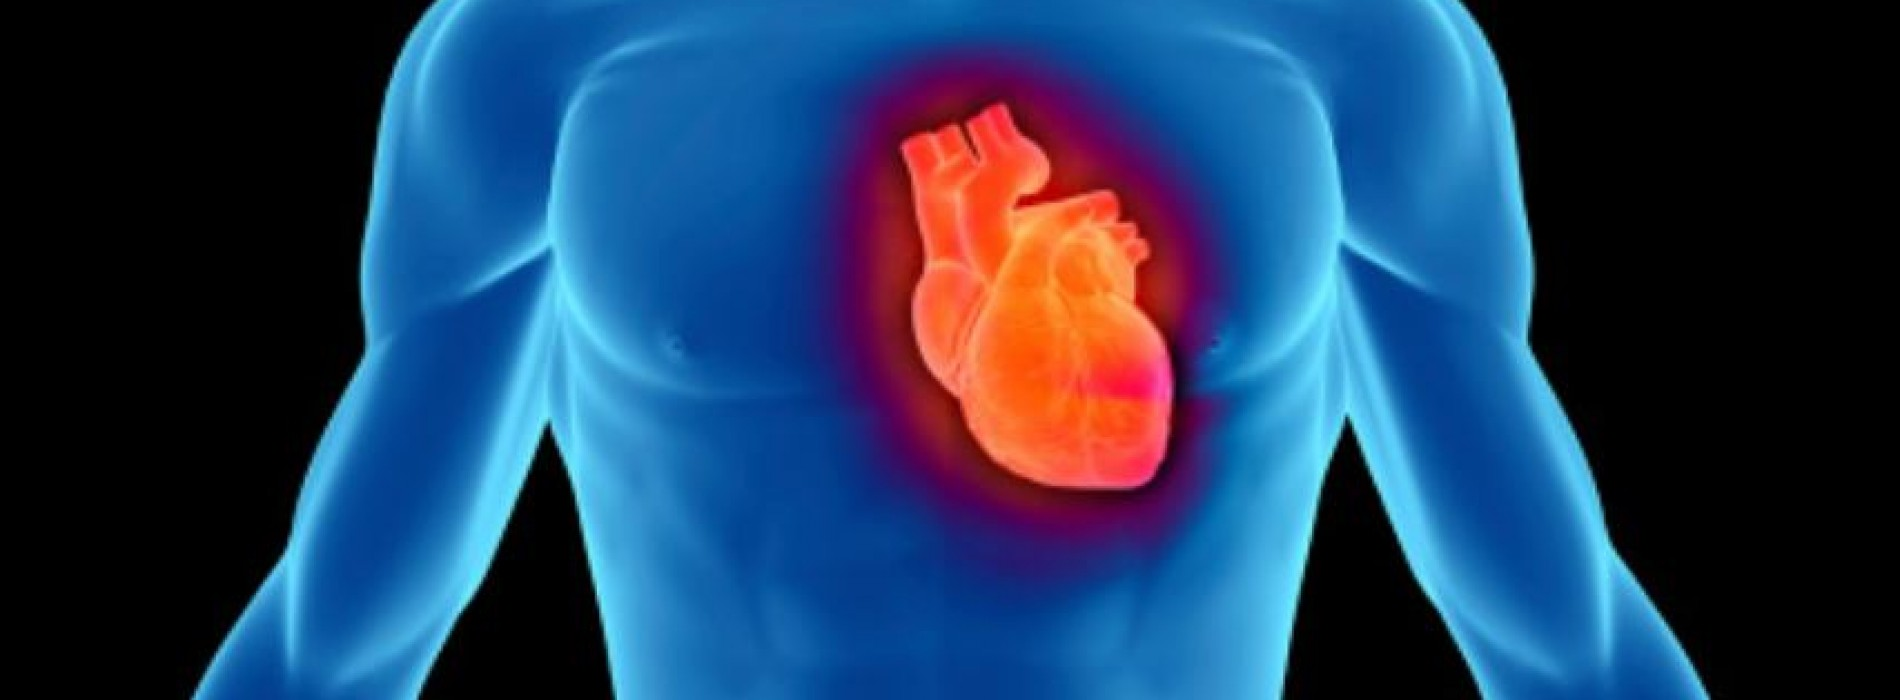 All you need to know about coronary circulation